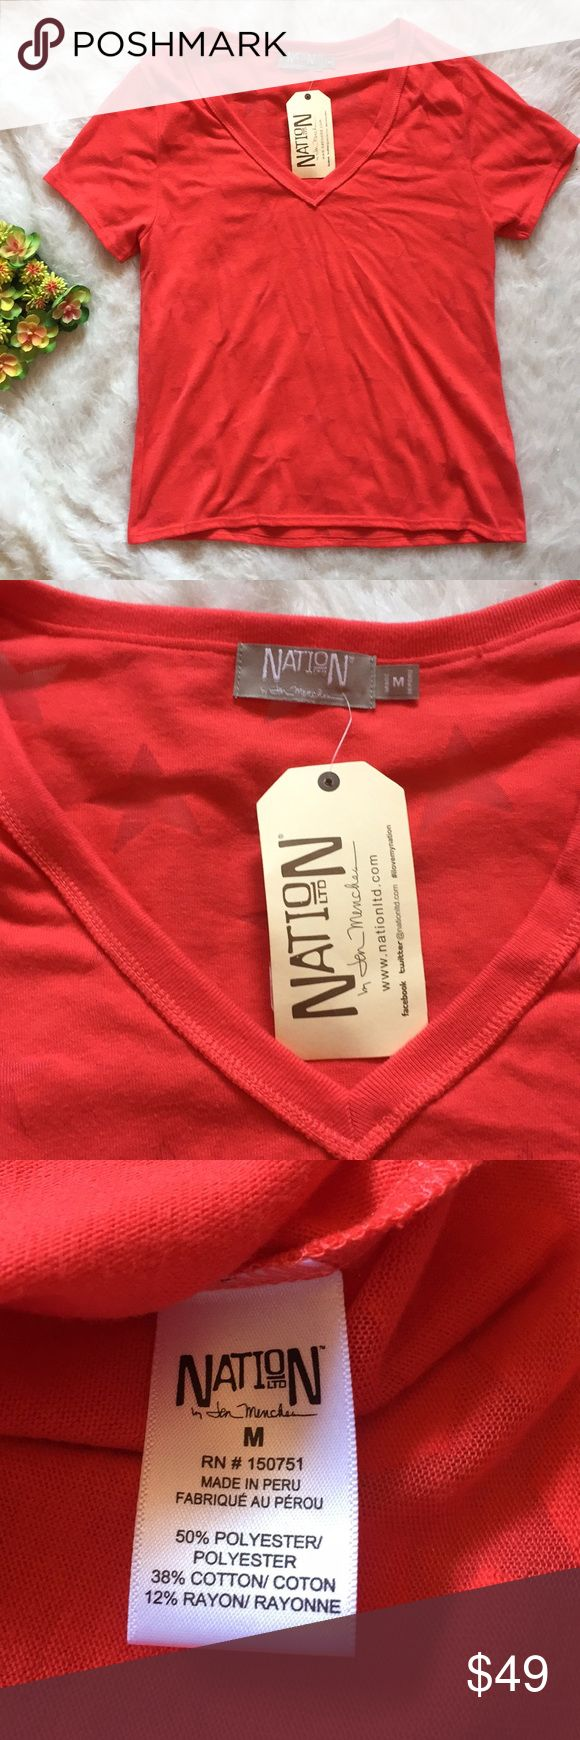 "NATION LTD by Jen Menchaca red star t-shirt NATION LTD by Jen Menchaca. Red with almost see through stars on back and front. Comfy material. NWOT perfect condition! Approx measurements: length 23"", bust 36"". So cute with boyfriend or skinny jeans! Please feel free to ask any questions or submit offers :) Nation LTD Tops Tees - Short Sleeve"